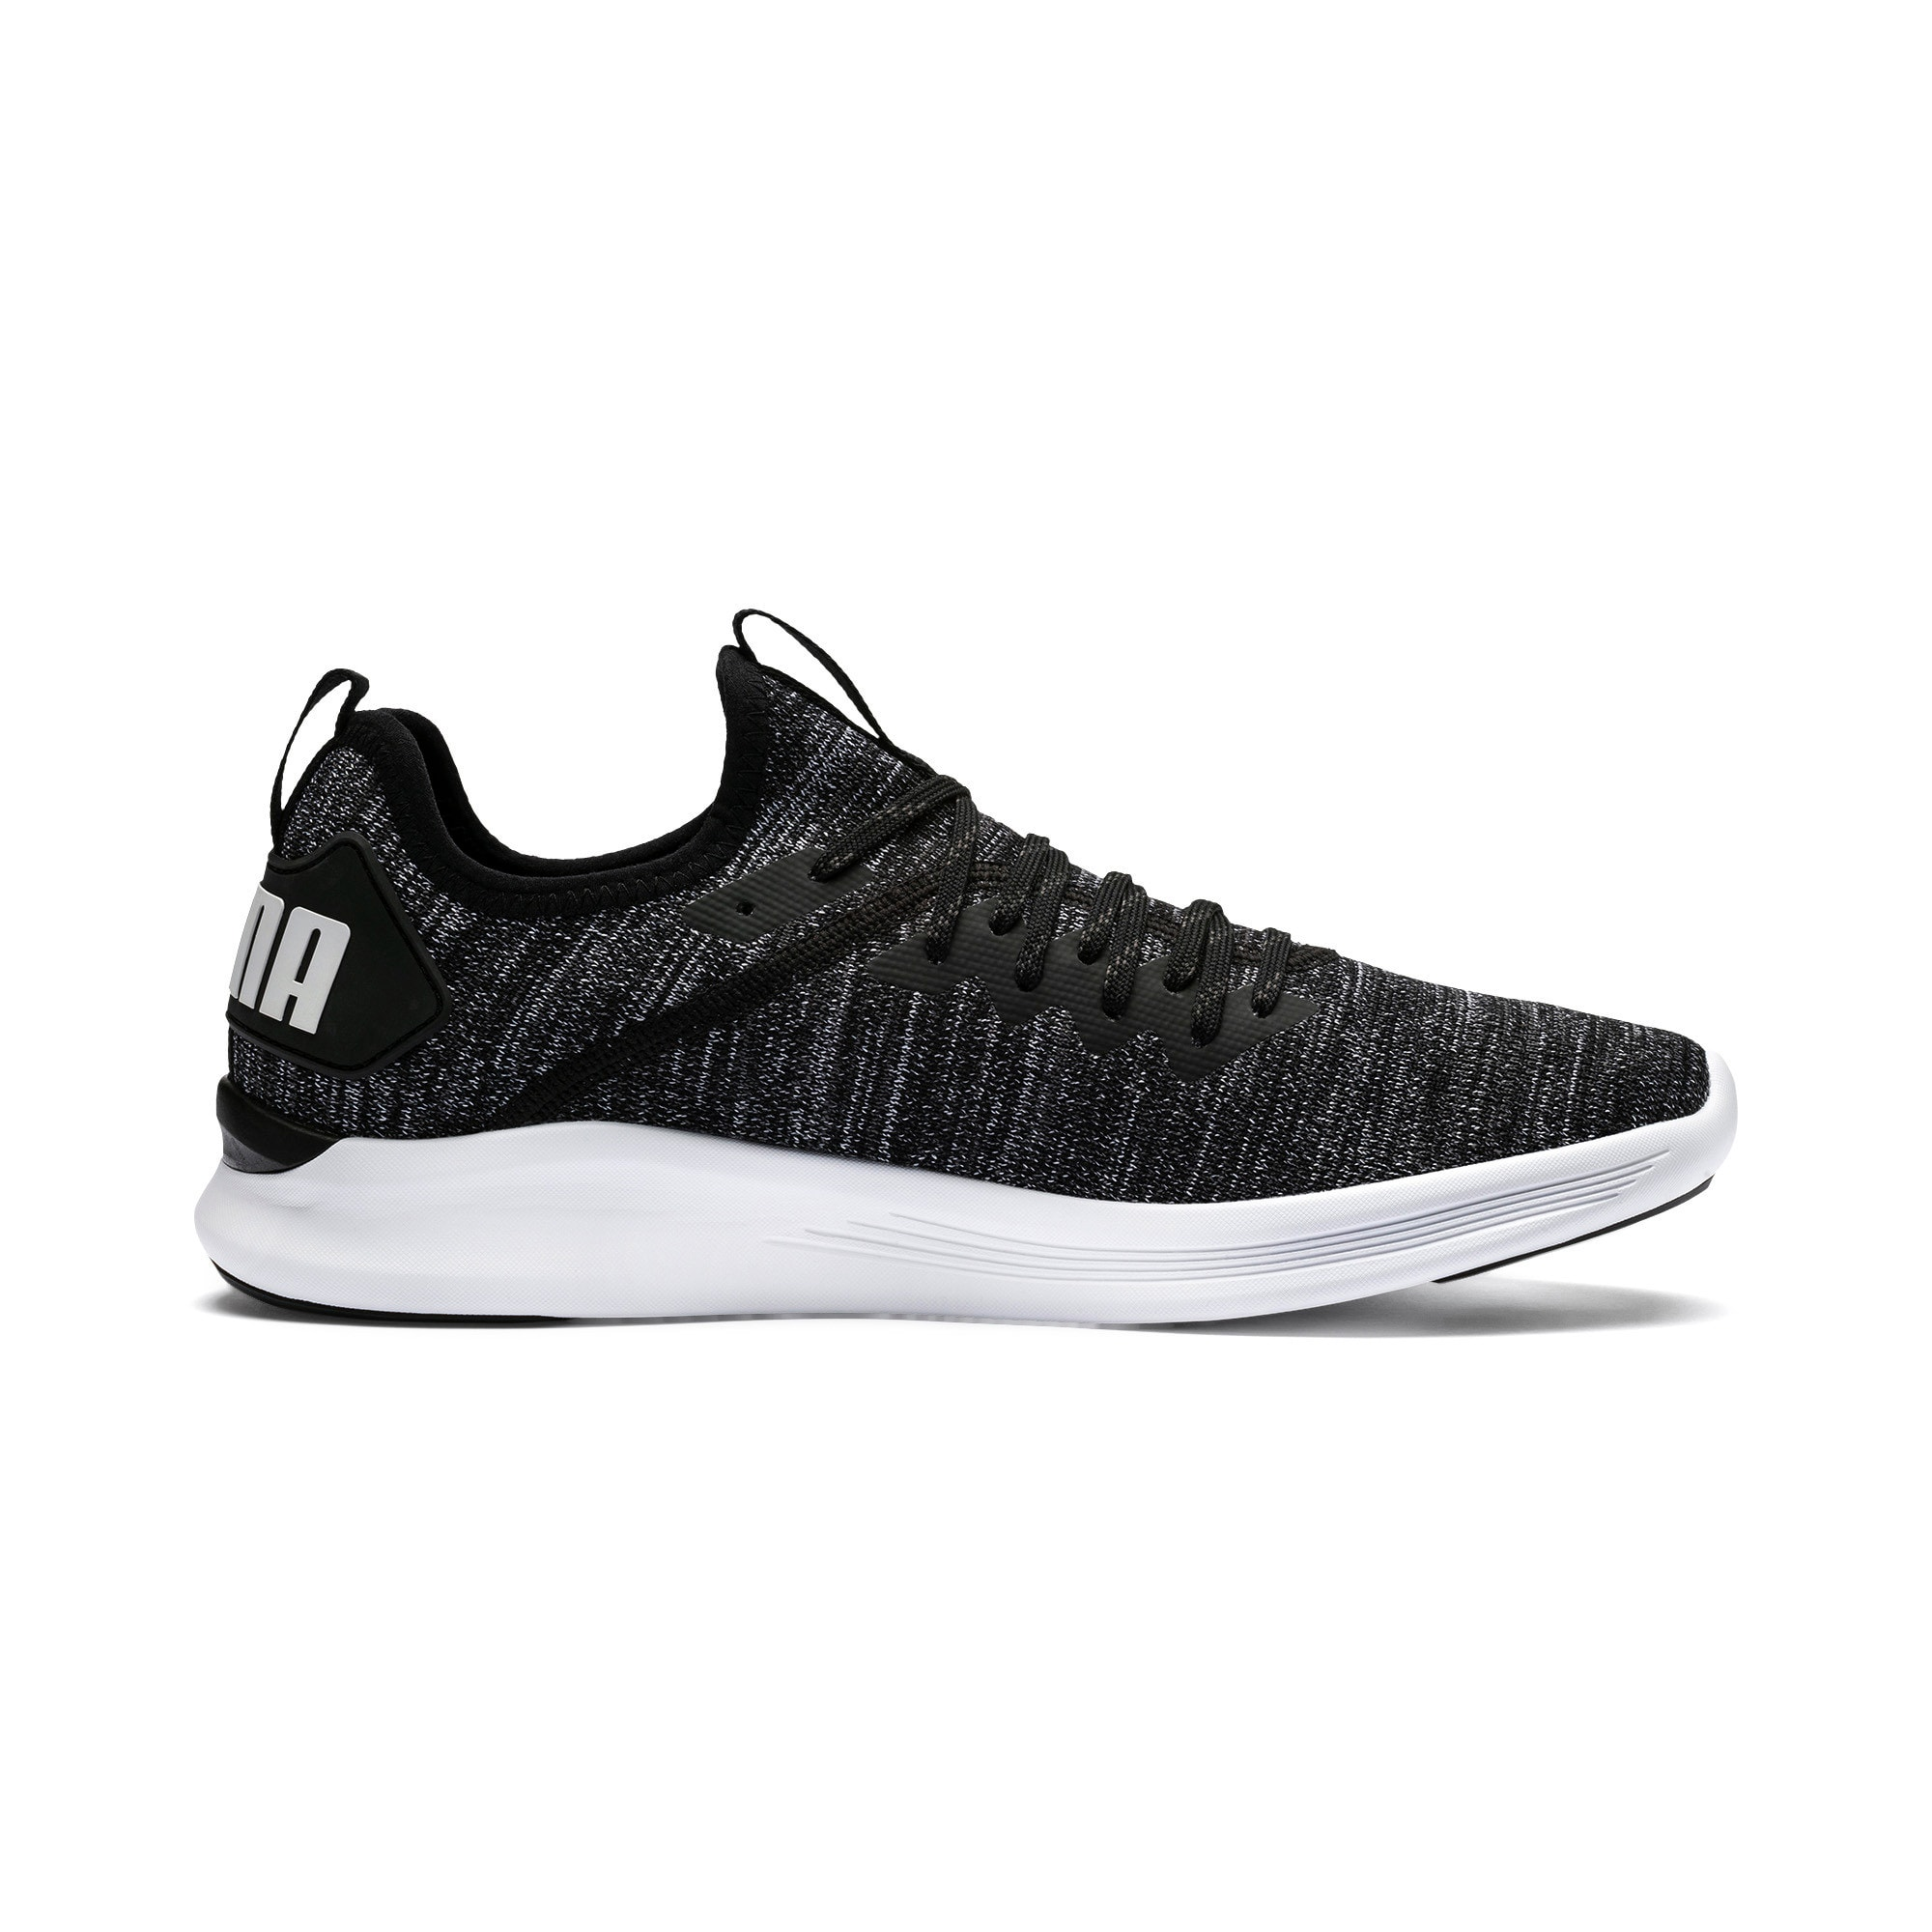 Thumbnail 5 of IGNITE Flash evoKNIT Men's Training Shoes, Black-Asphalt-White, medium-IND